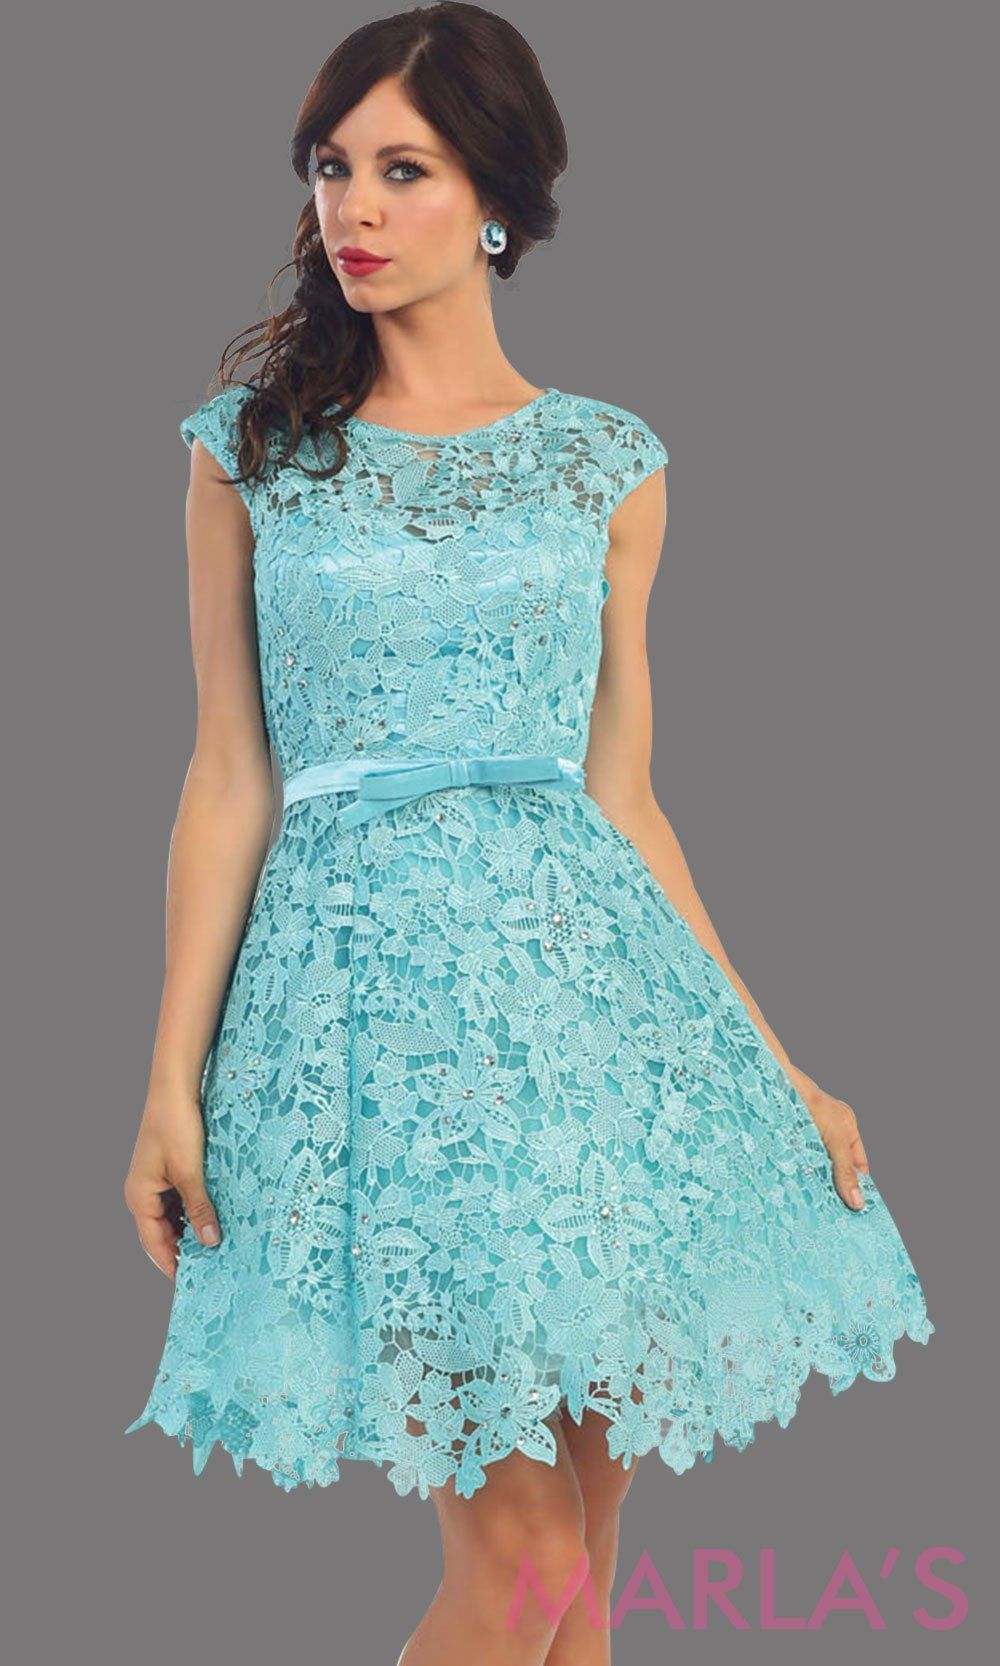 dace15f187b Short aqua lace high neck dress with a satin bow. This light blue dress has  a flowy skirt. It is perfect for grade 8 graduation dress